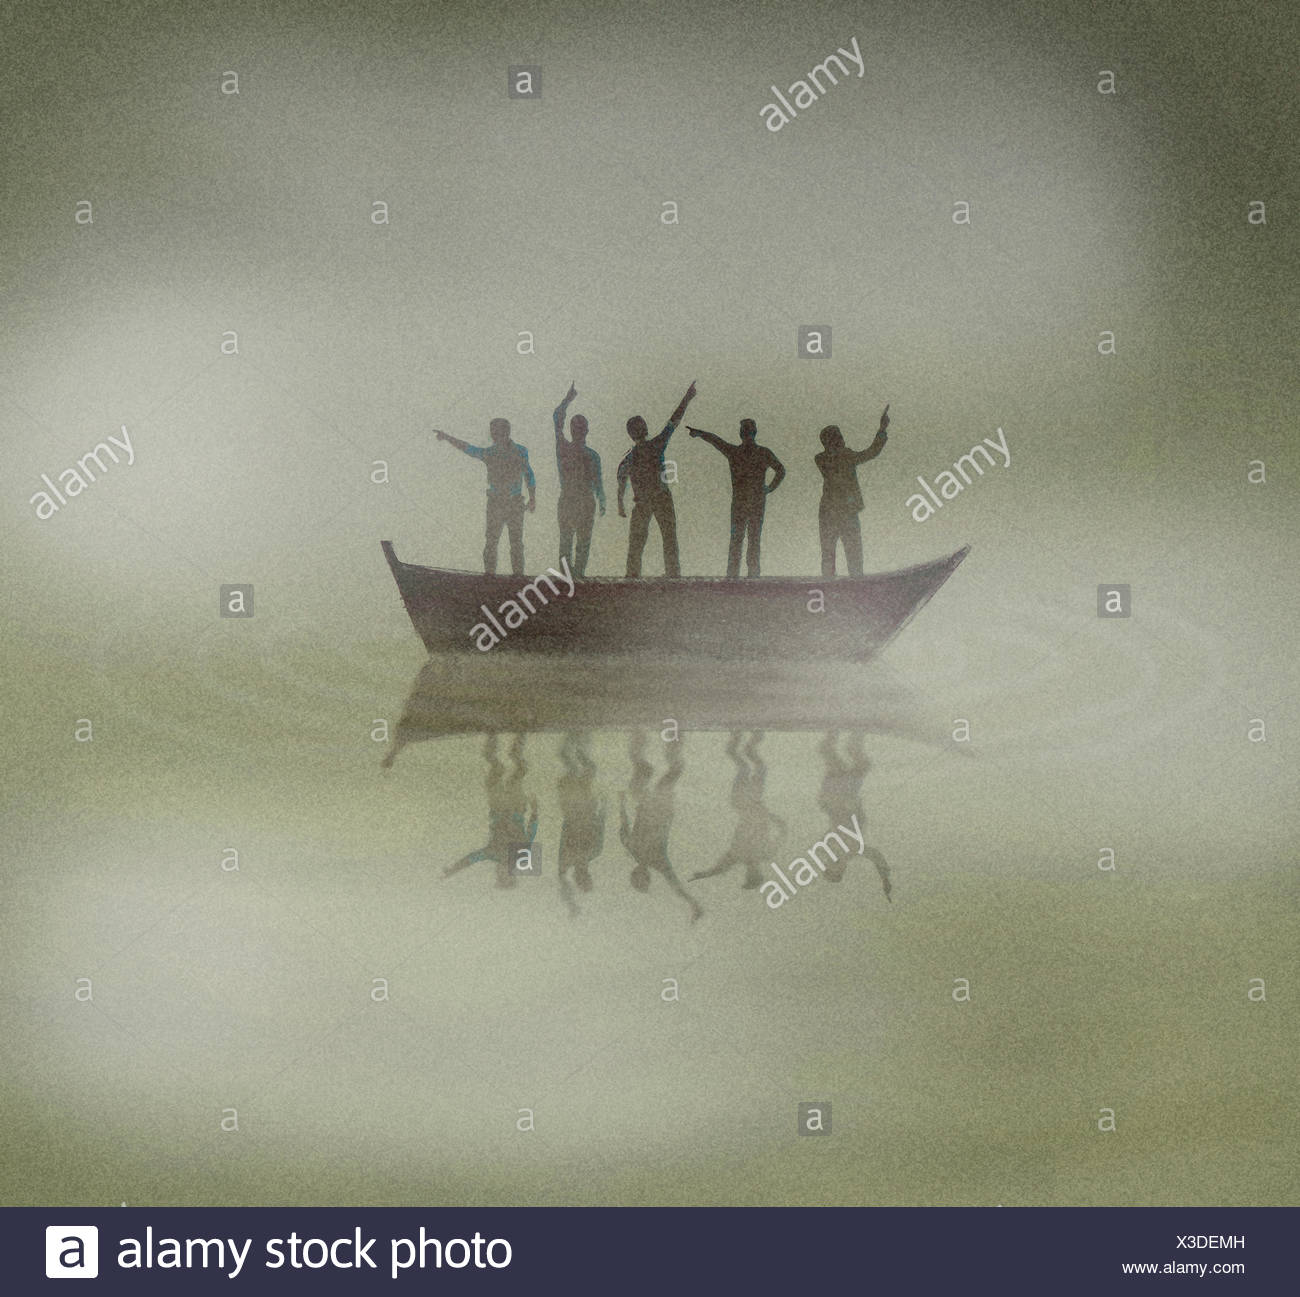 People on boat lost in fog pointing in different directions - Stock Image